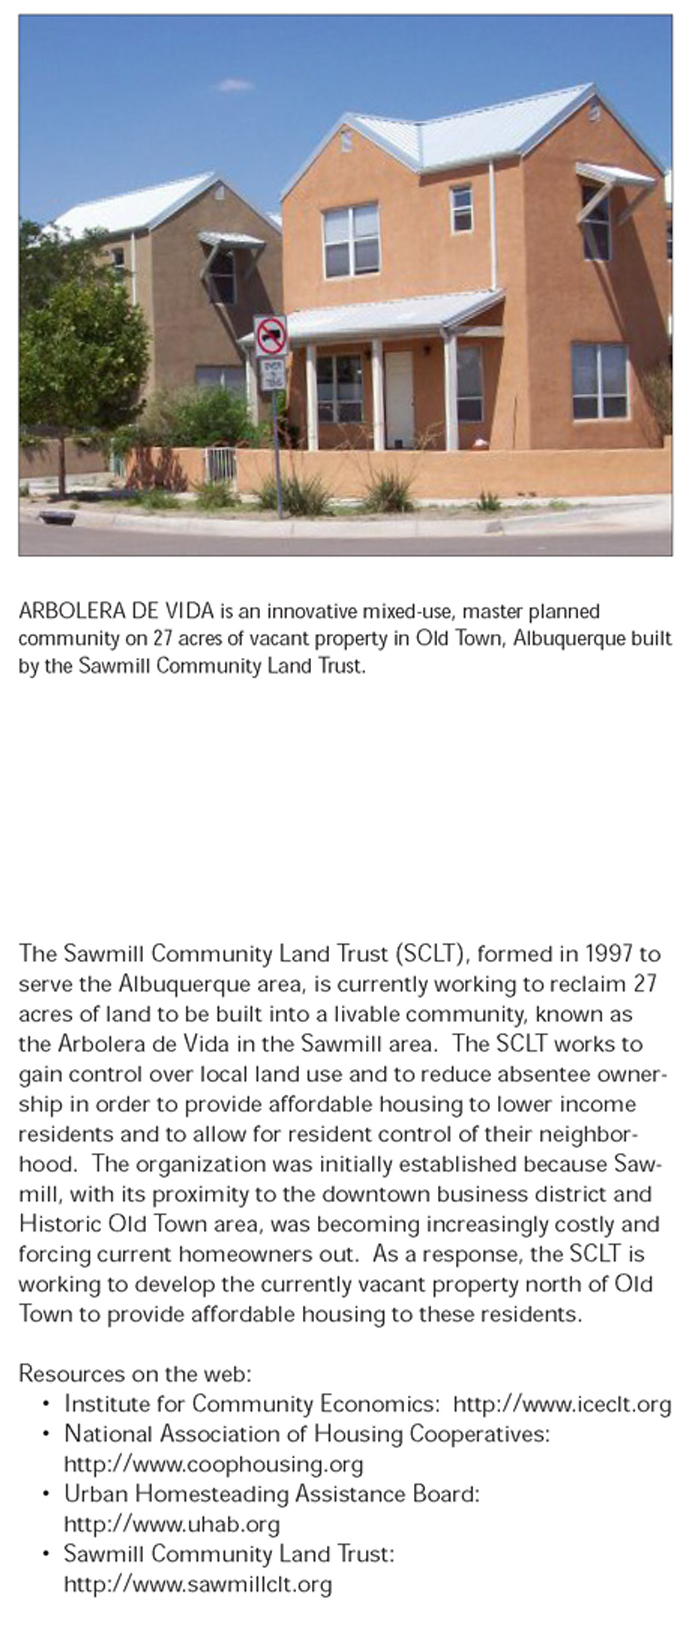 The final set of implementation strategies look to learn from [rather than blindly emulate] other housing affordability efforts, such as resident-controlled limited-equity ownerships like the Sawmill Community Land Trust in Albuquerque. Source: Moule & Polyzoides Architects and Urbanists